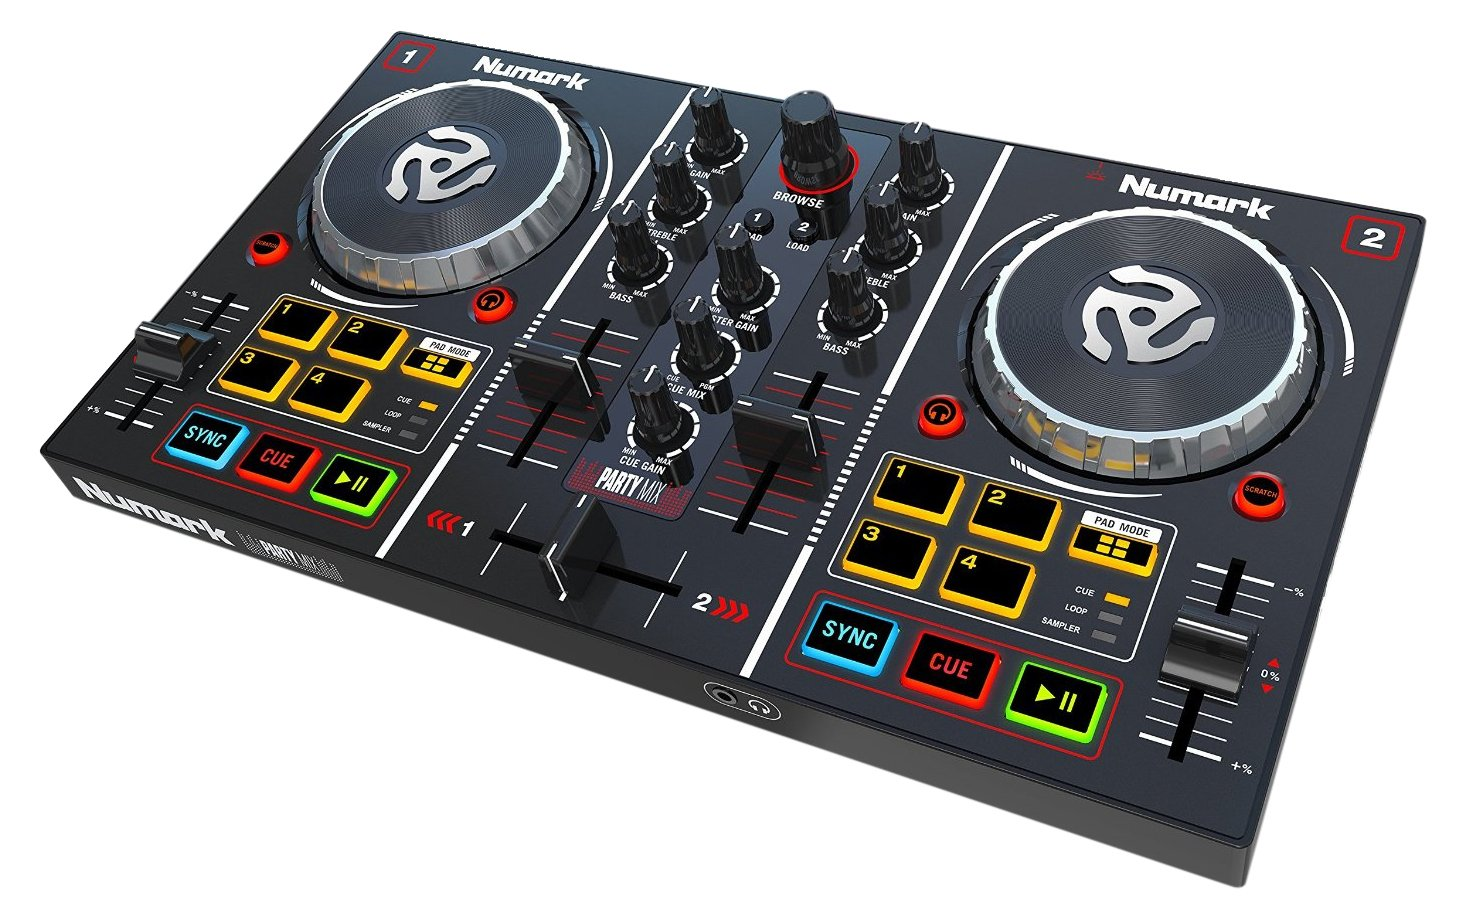 numark Party Mix Starter DJ Controller with Built In Sound Card & Light Show & Virtual LE Software, 2 x 12.80 x 7.75